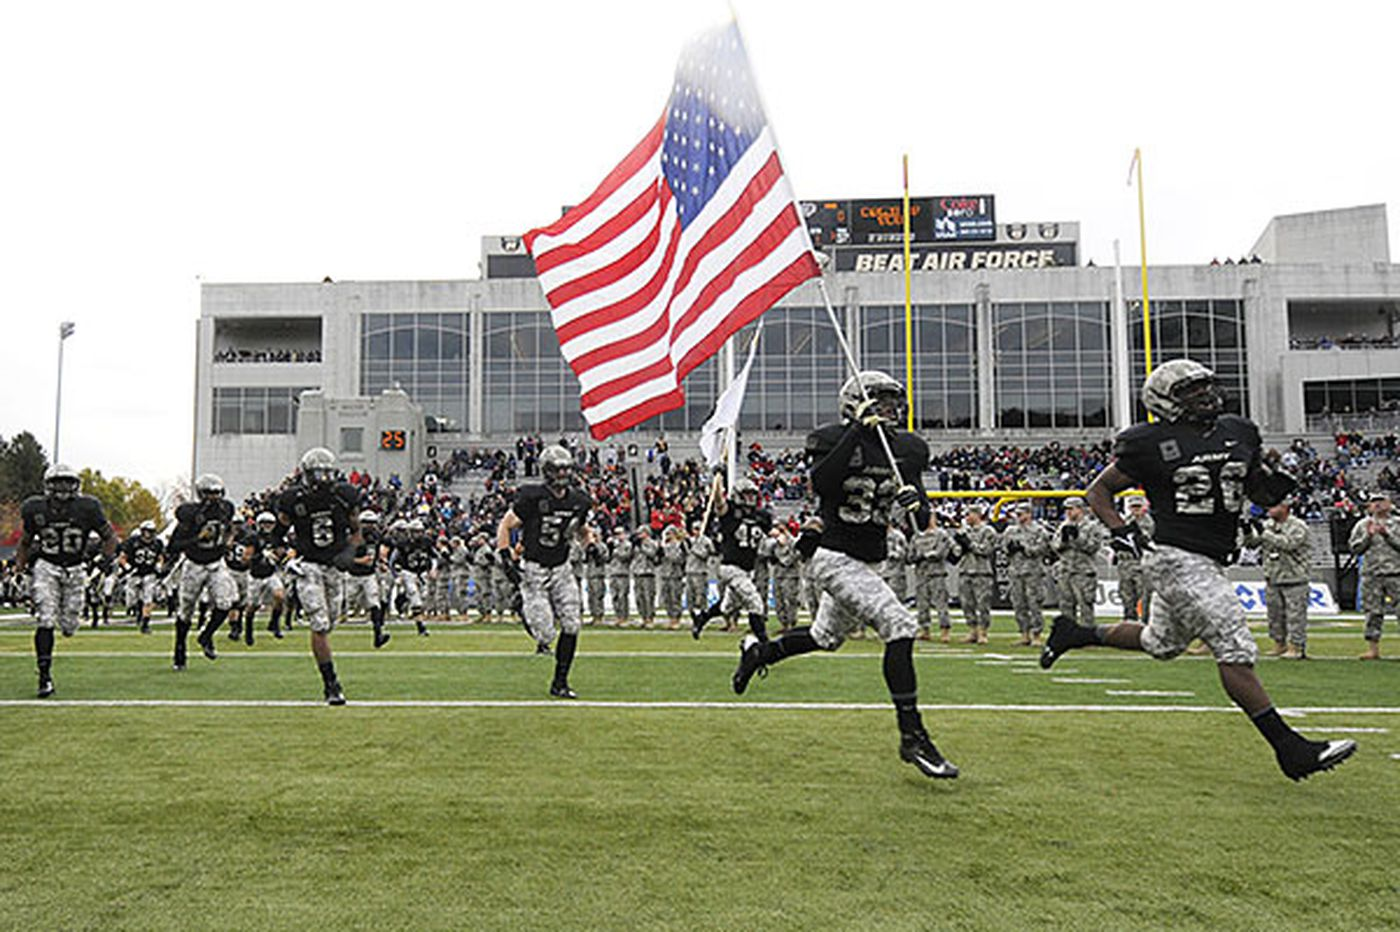 Army aims to end 11-game slump against Navy